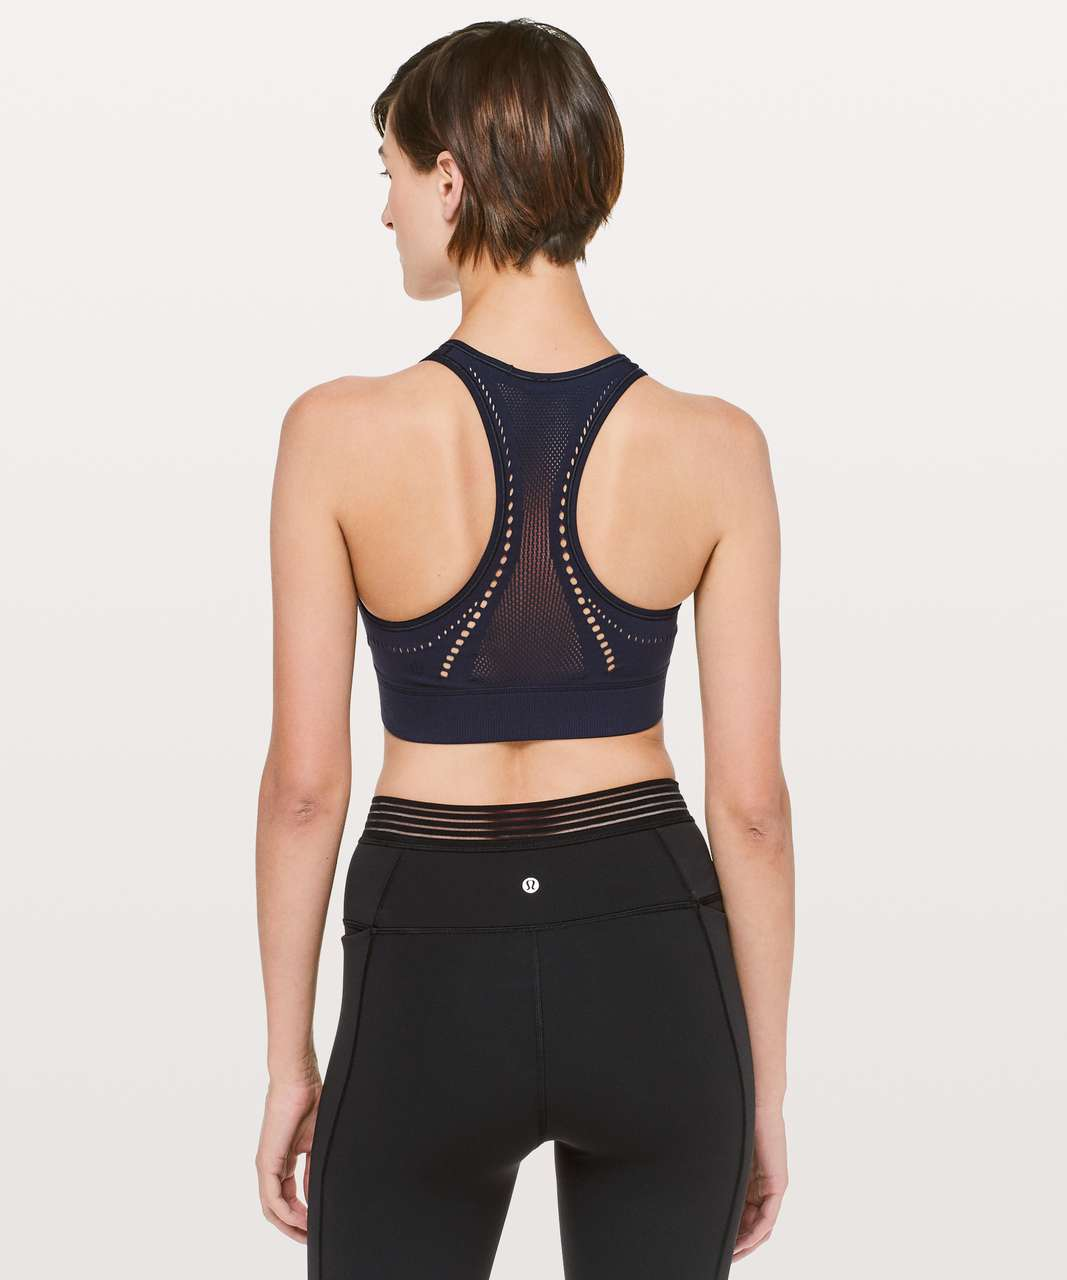 Lululemon Reveal Bra *Precision - Midnight Navy